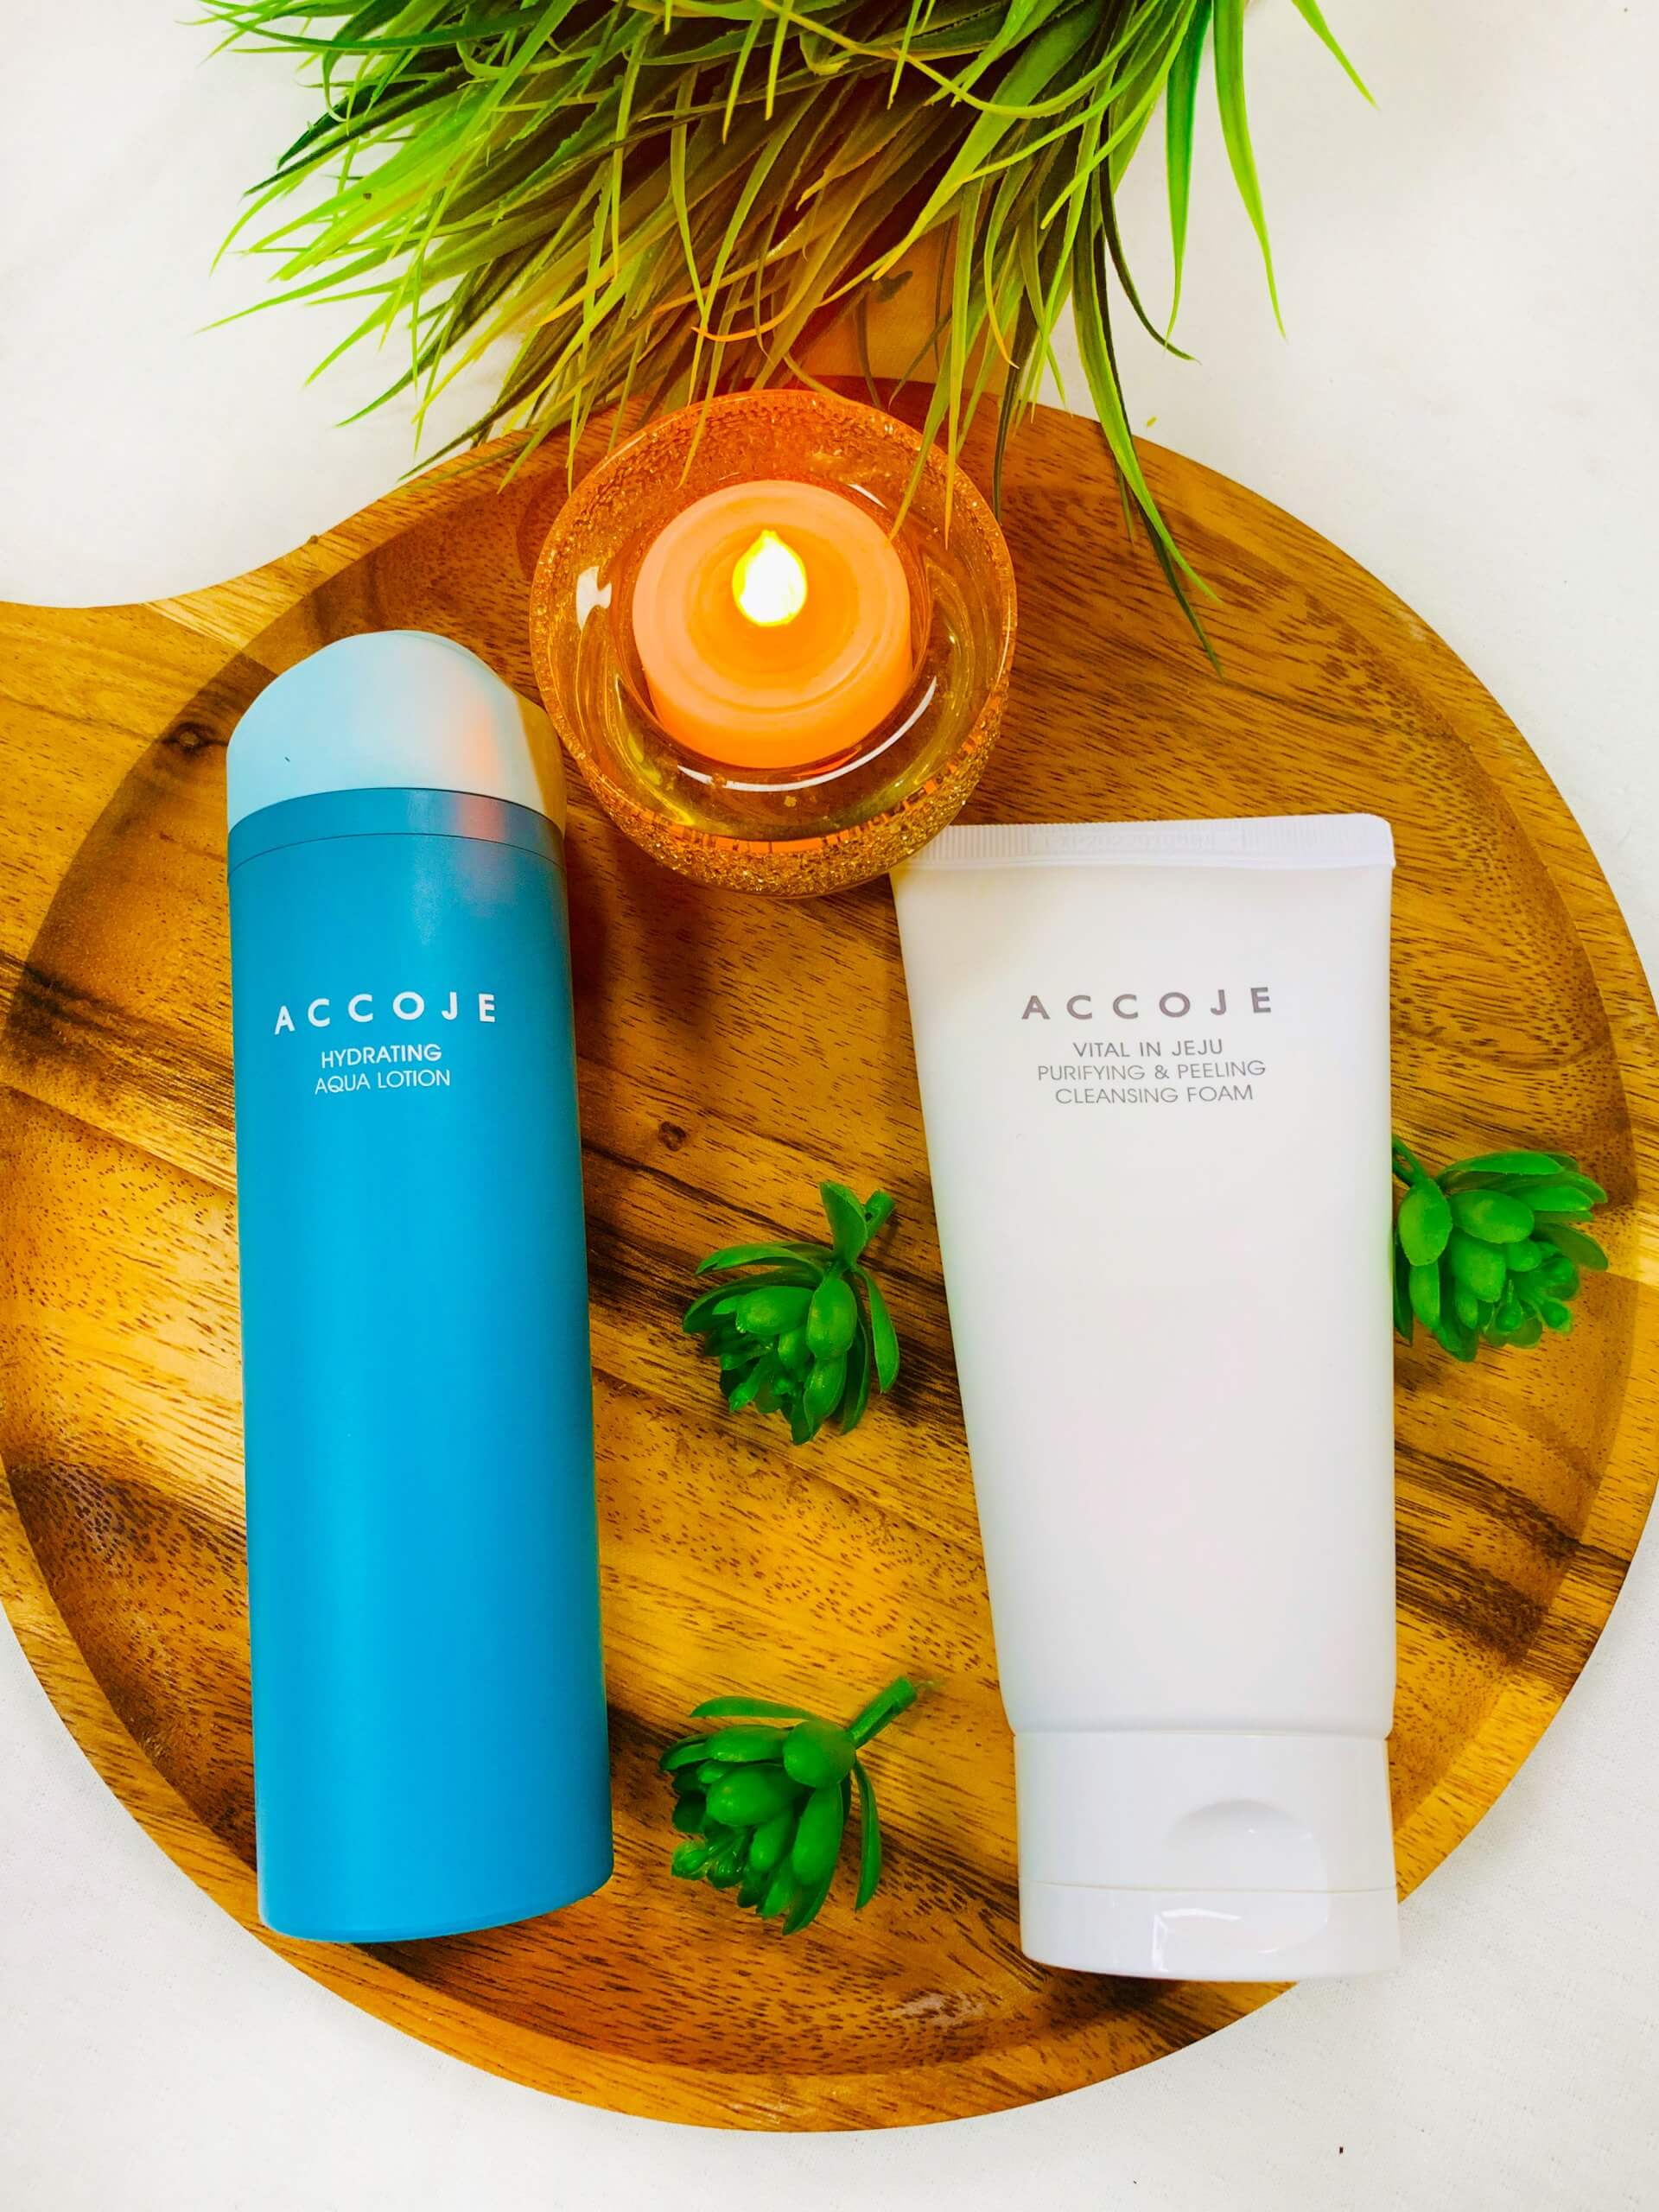 Hydrating Aqua Lotion (130 ml) + Vital in Jeju Purifying & Peeling Cleansing Foam (150 ml) Gift Box